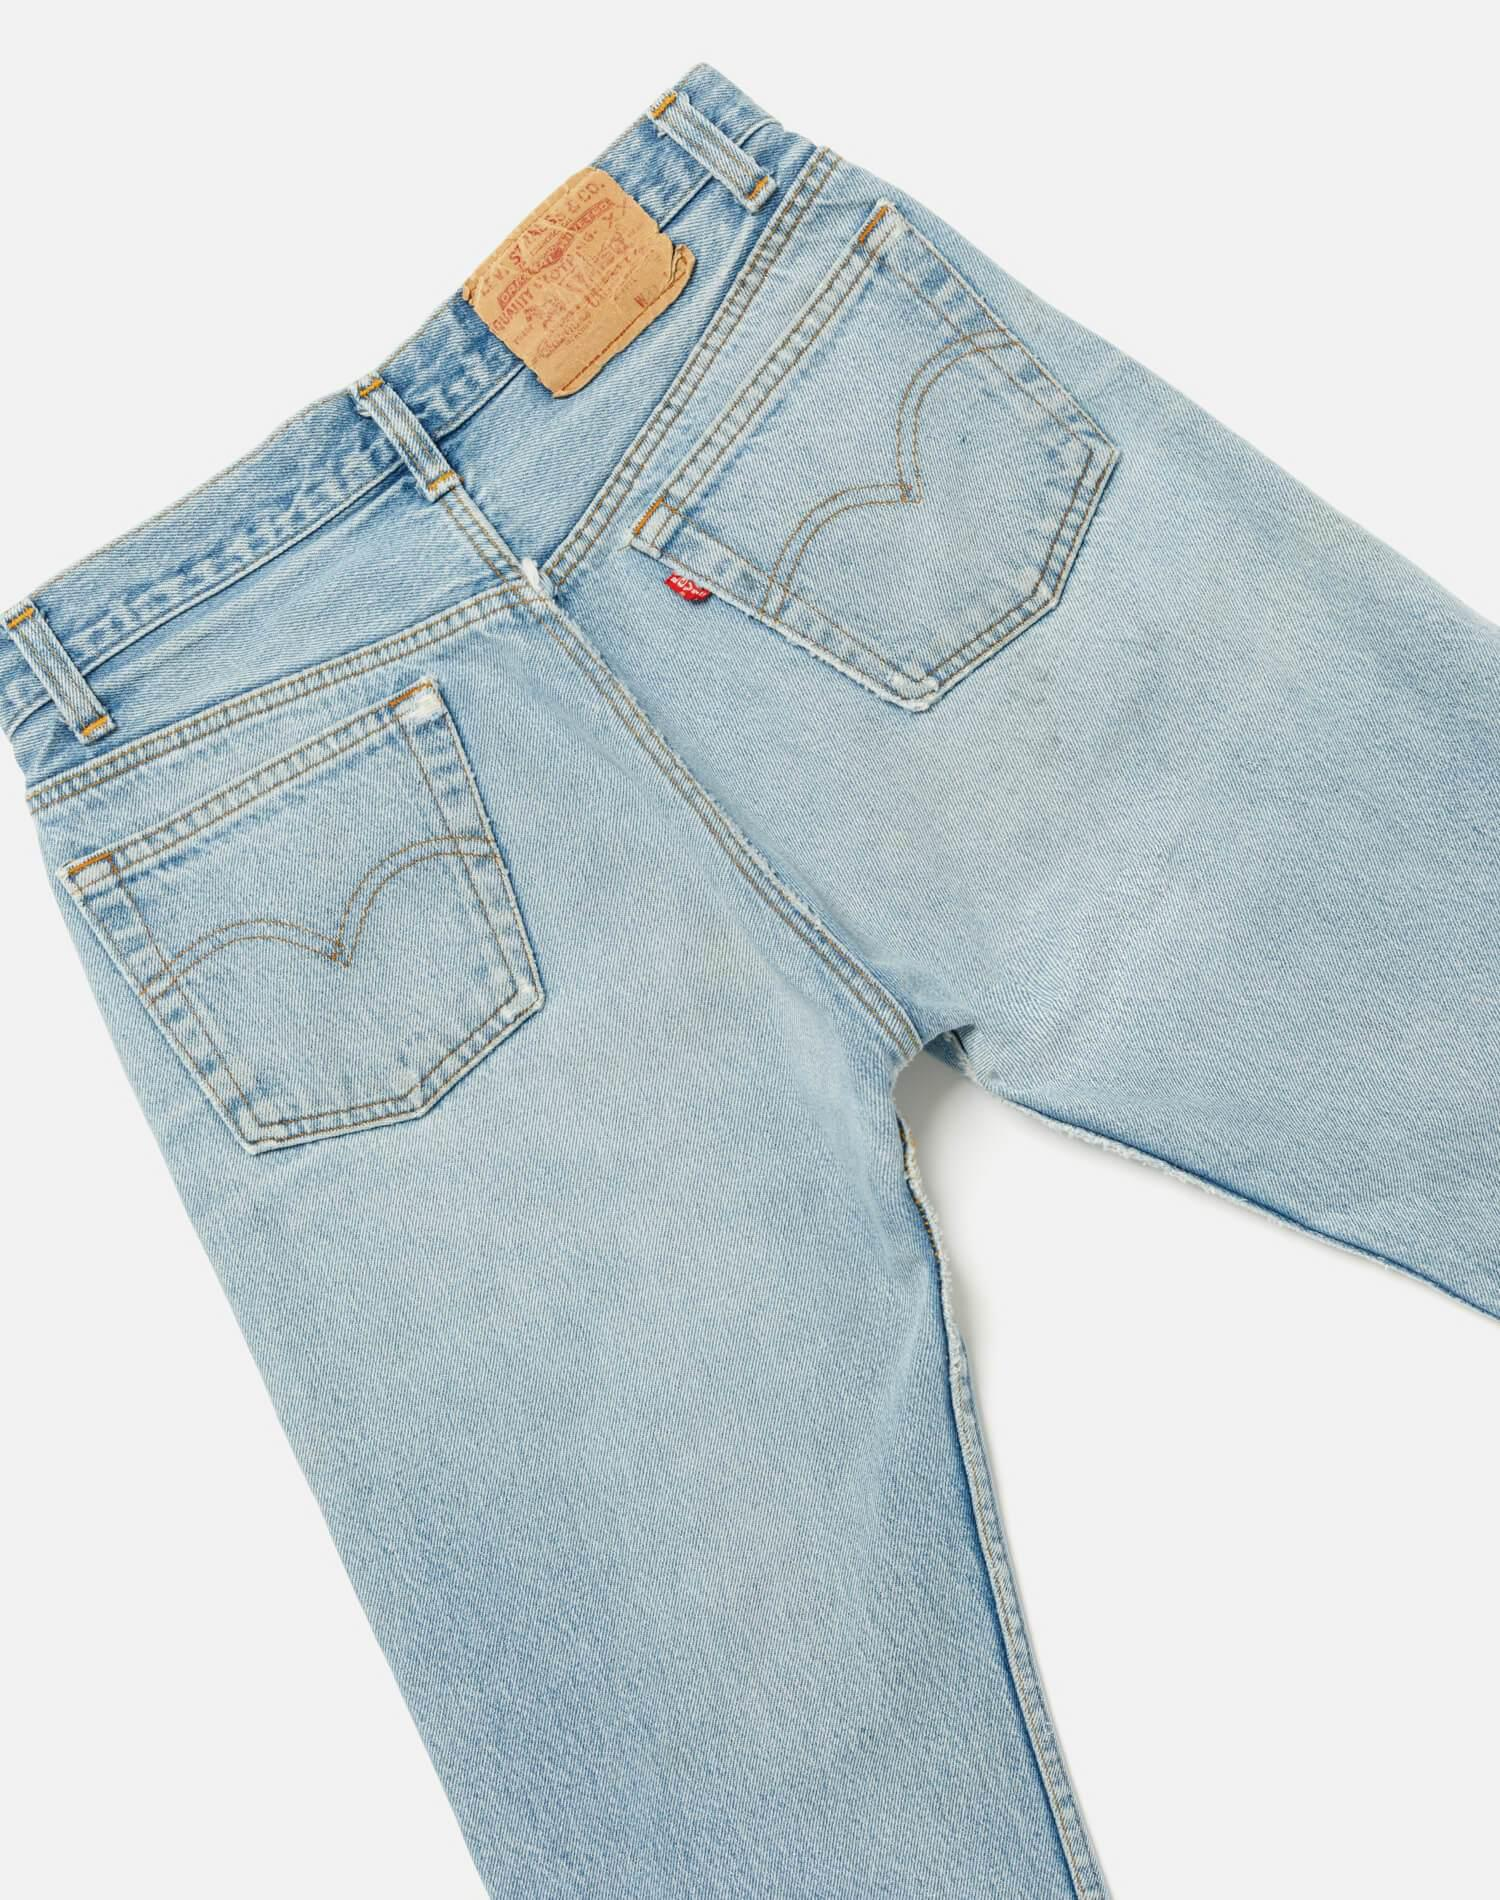 70s/80s Vintage Levi's 501 High Rise Relaxed Straight Leg Size 28 - #251 3